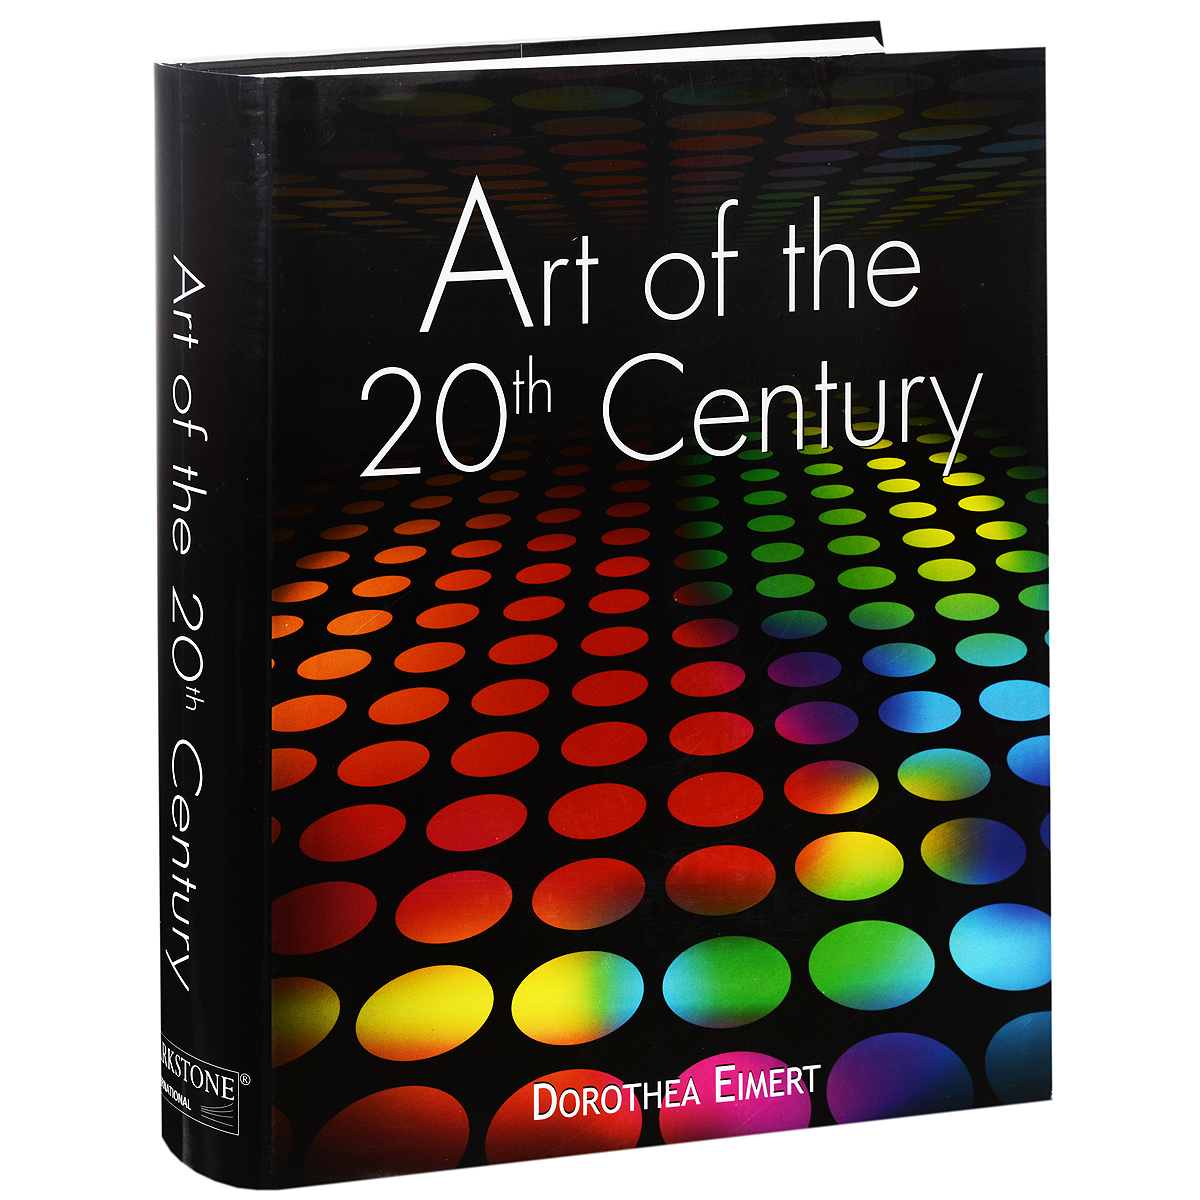 Art of the 20th Century the art of noise art of noise at the end of the century 2 cd dvd